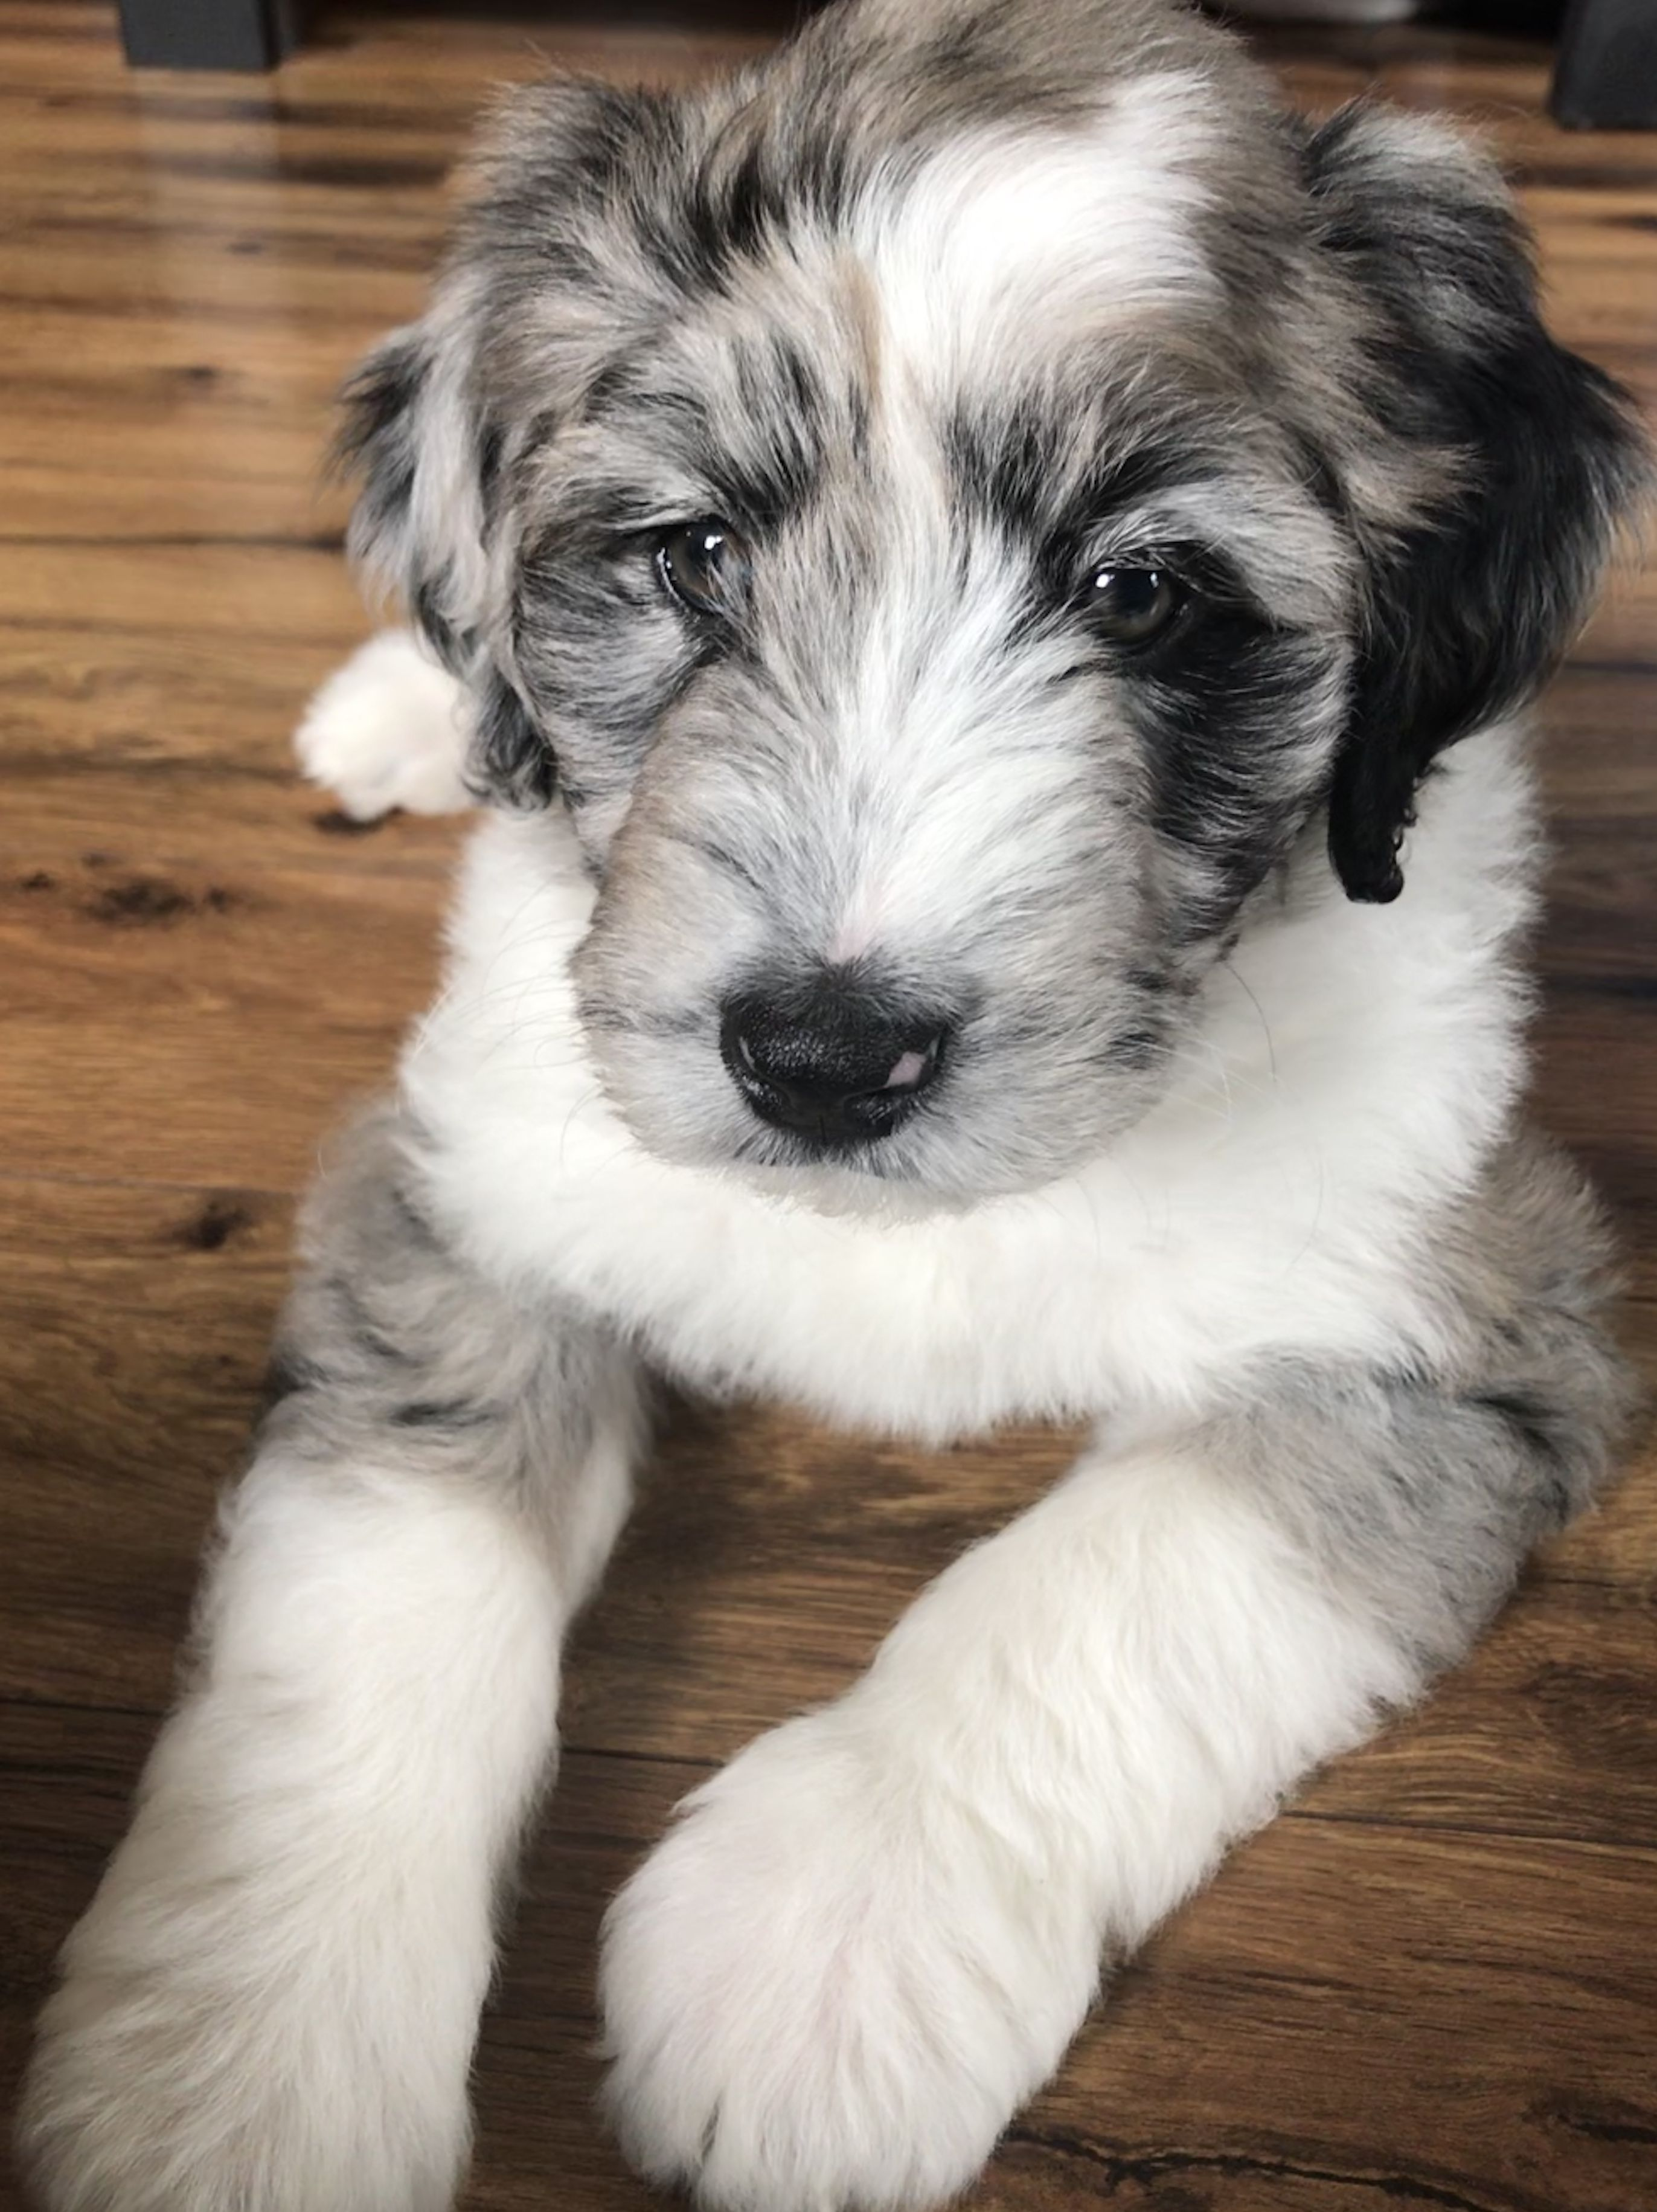 Puppy Love Aussiedoodle 9 Weeks Old Dog Lovers Puppies Puppy Paws